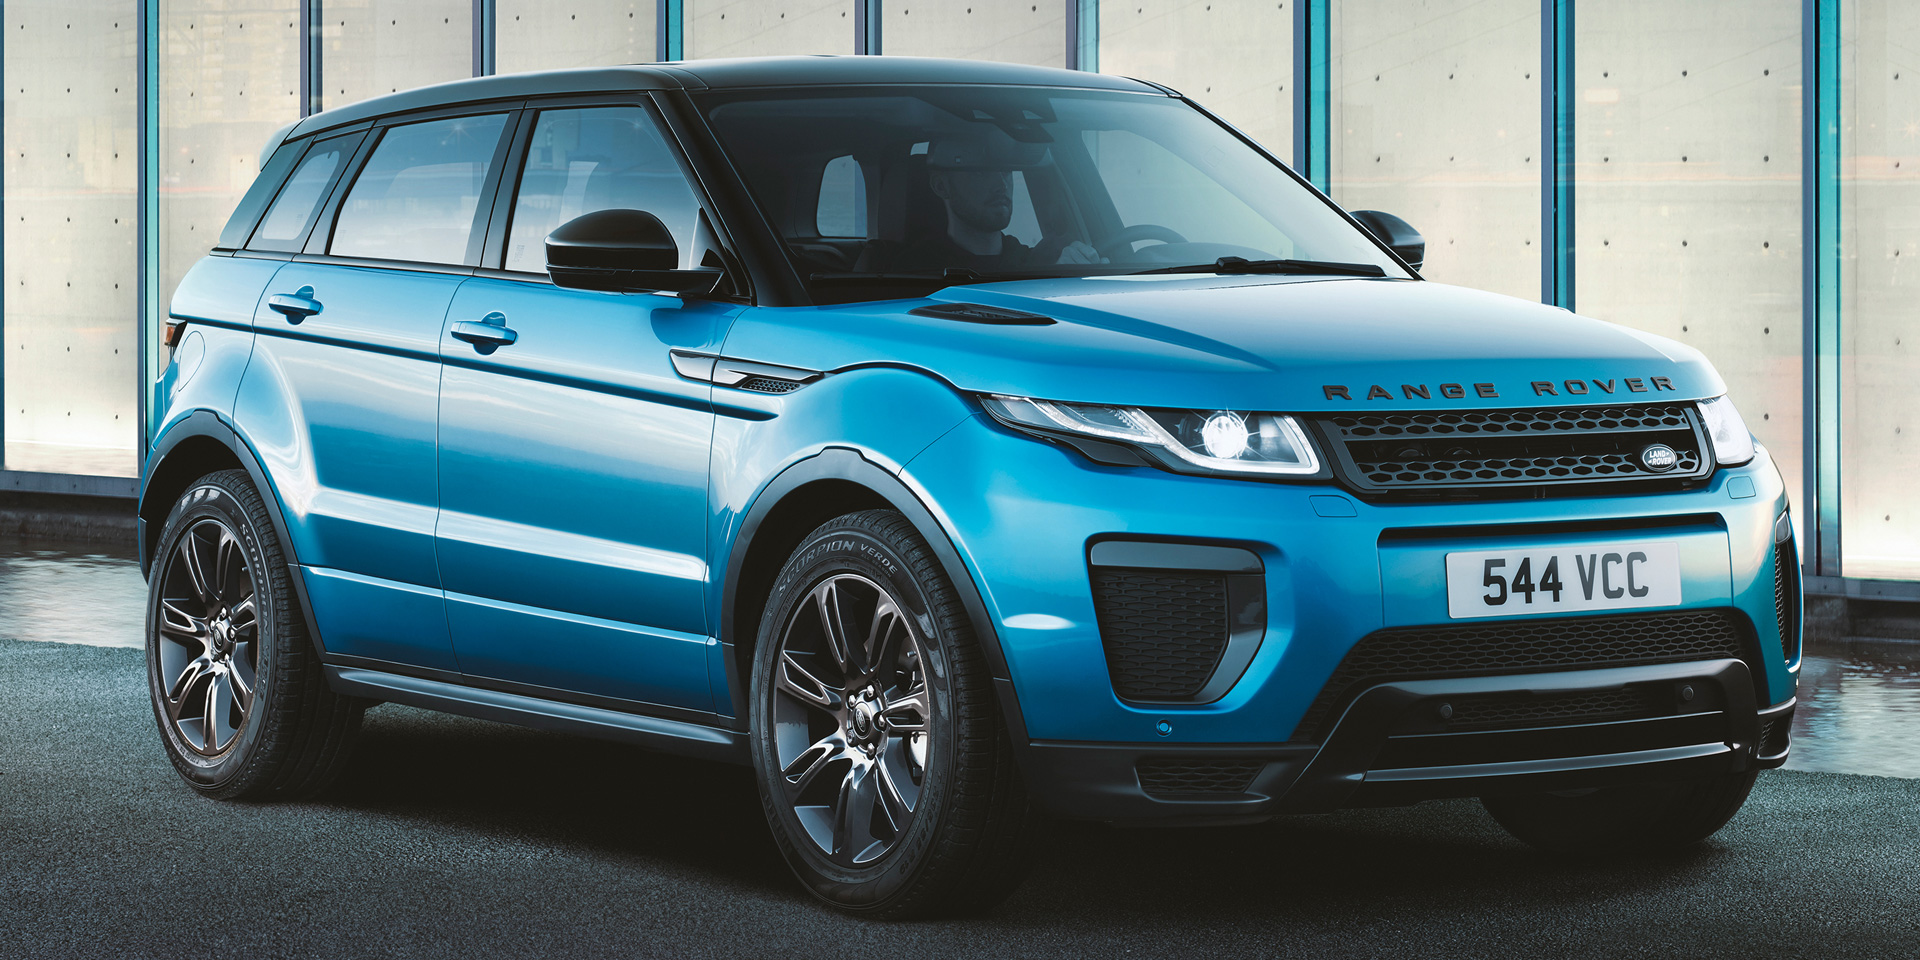 2018 land rover range rover evoque vehicles on display chicago auto show. Black Bedroom Furniture Sets. Home Design Ideas